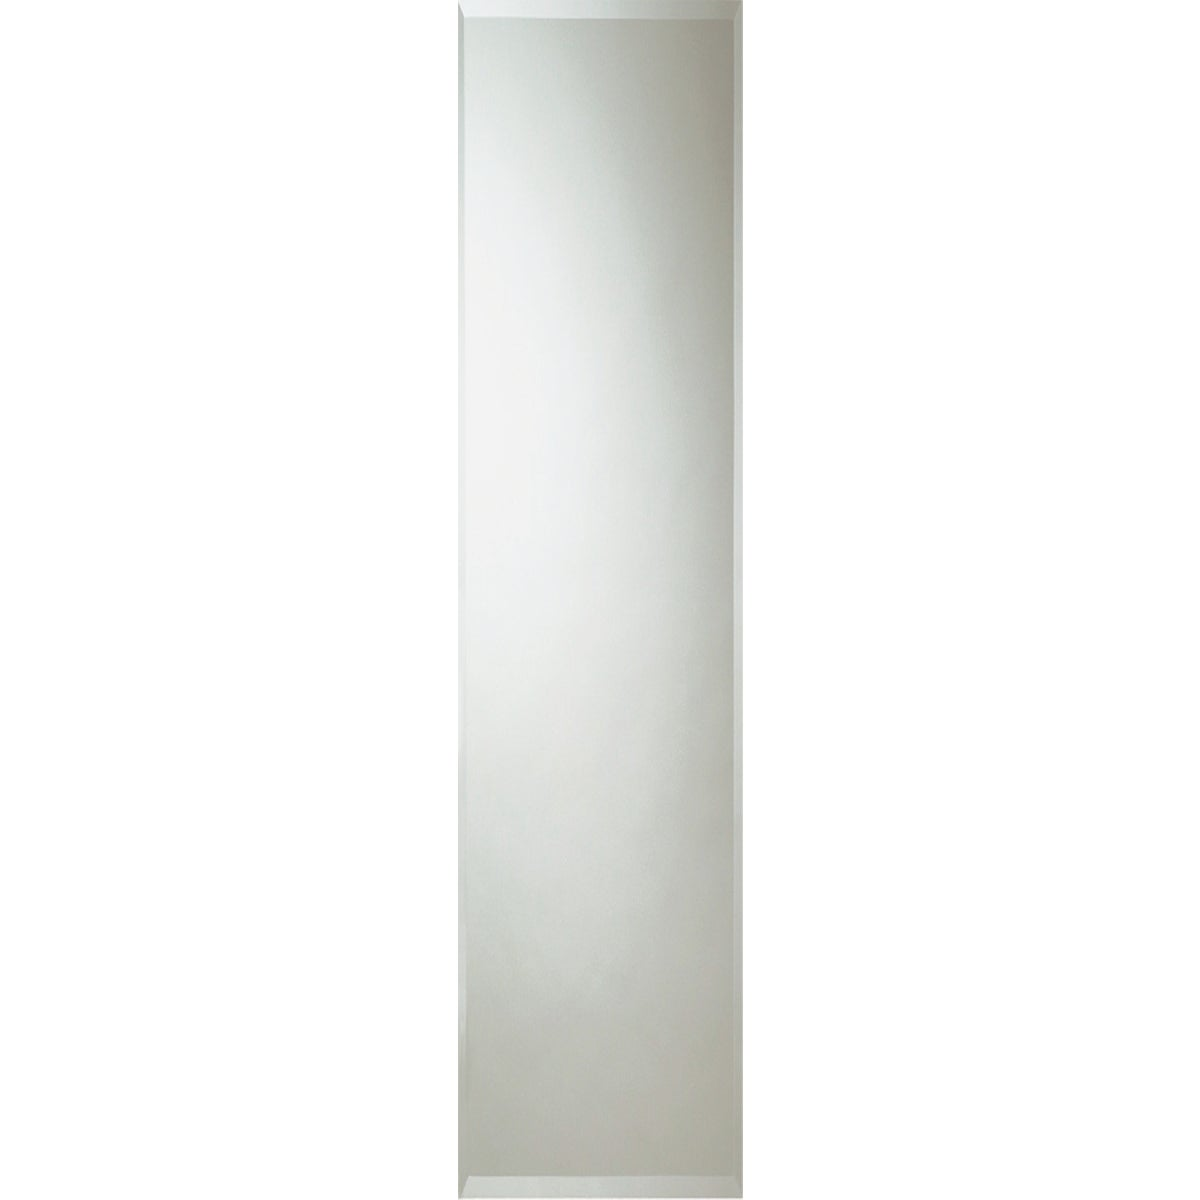 SOMERSET FMLS DR MIRROR - 20-5220 by Home Decor Innovatns